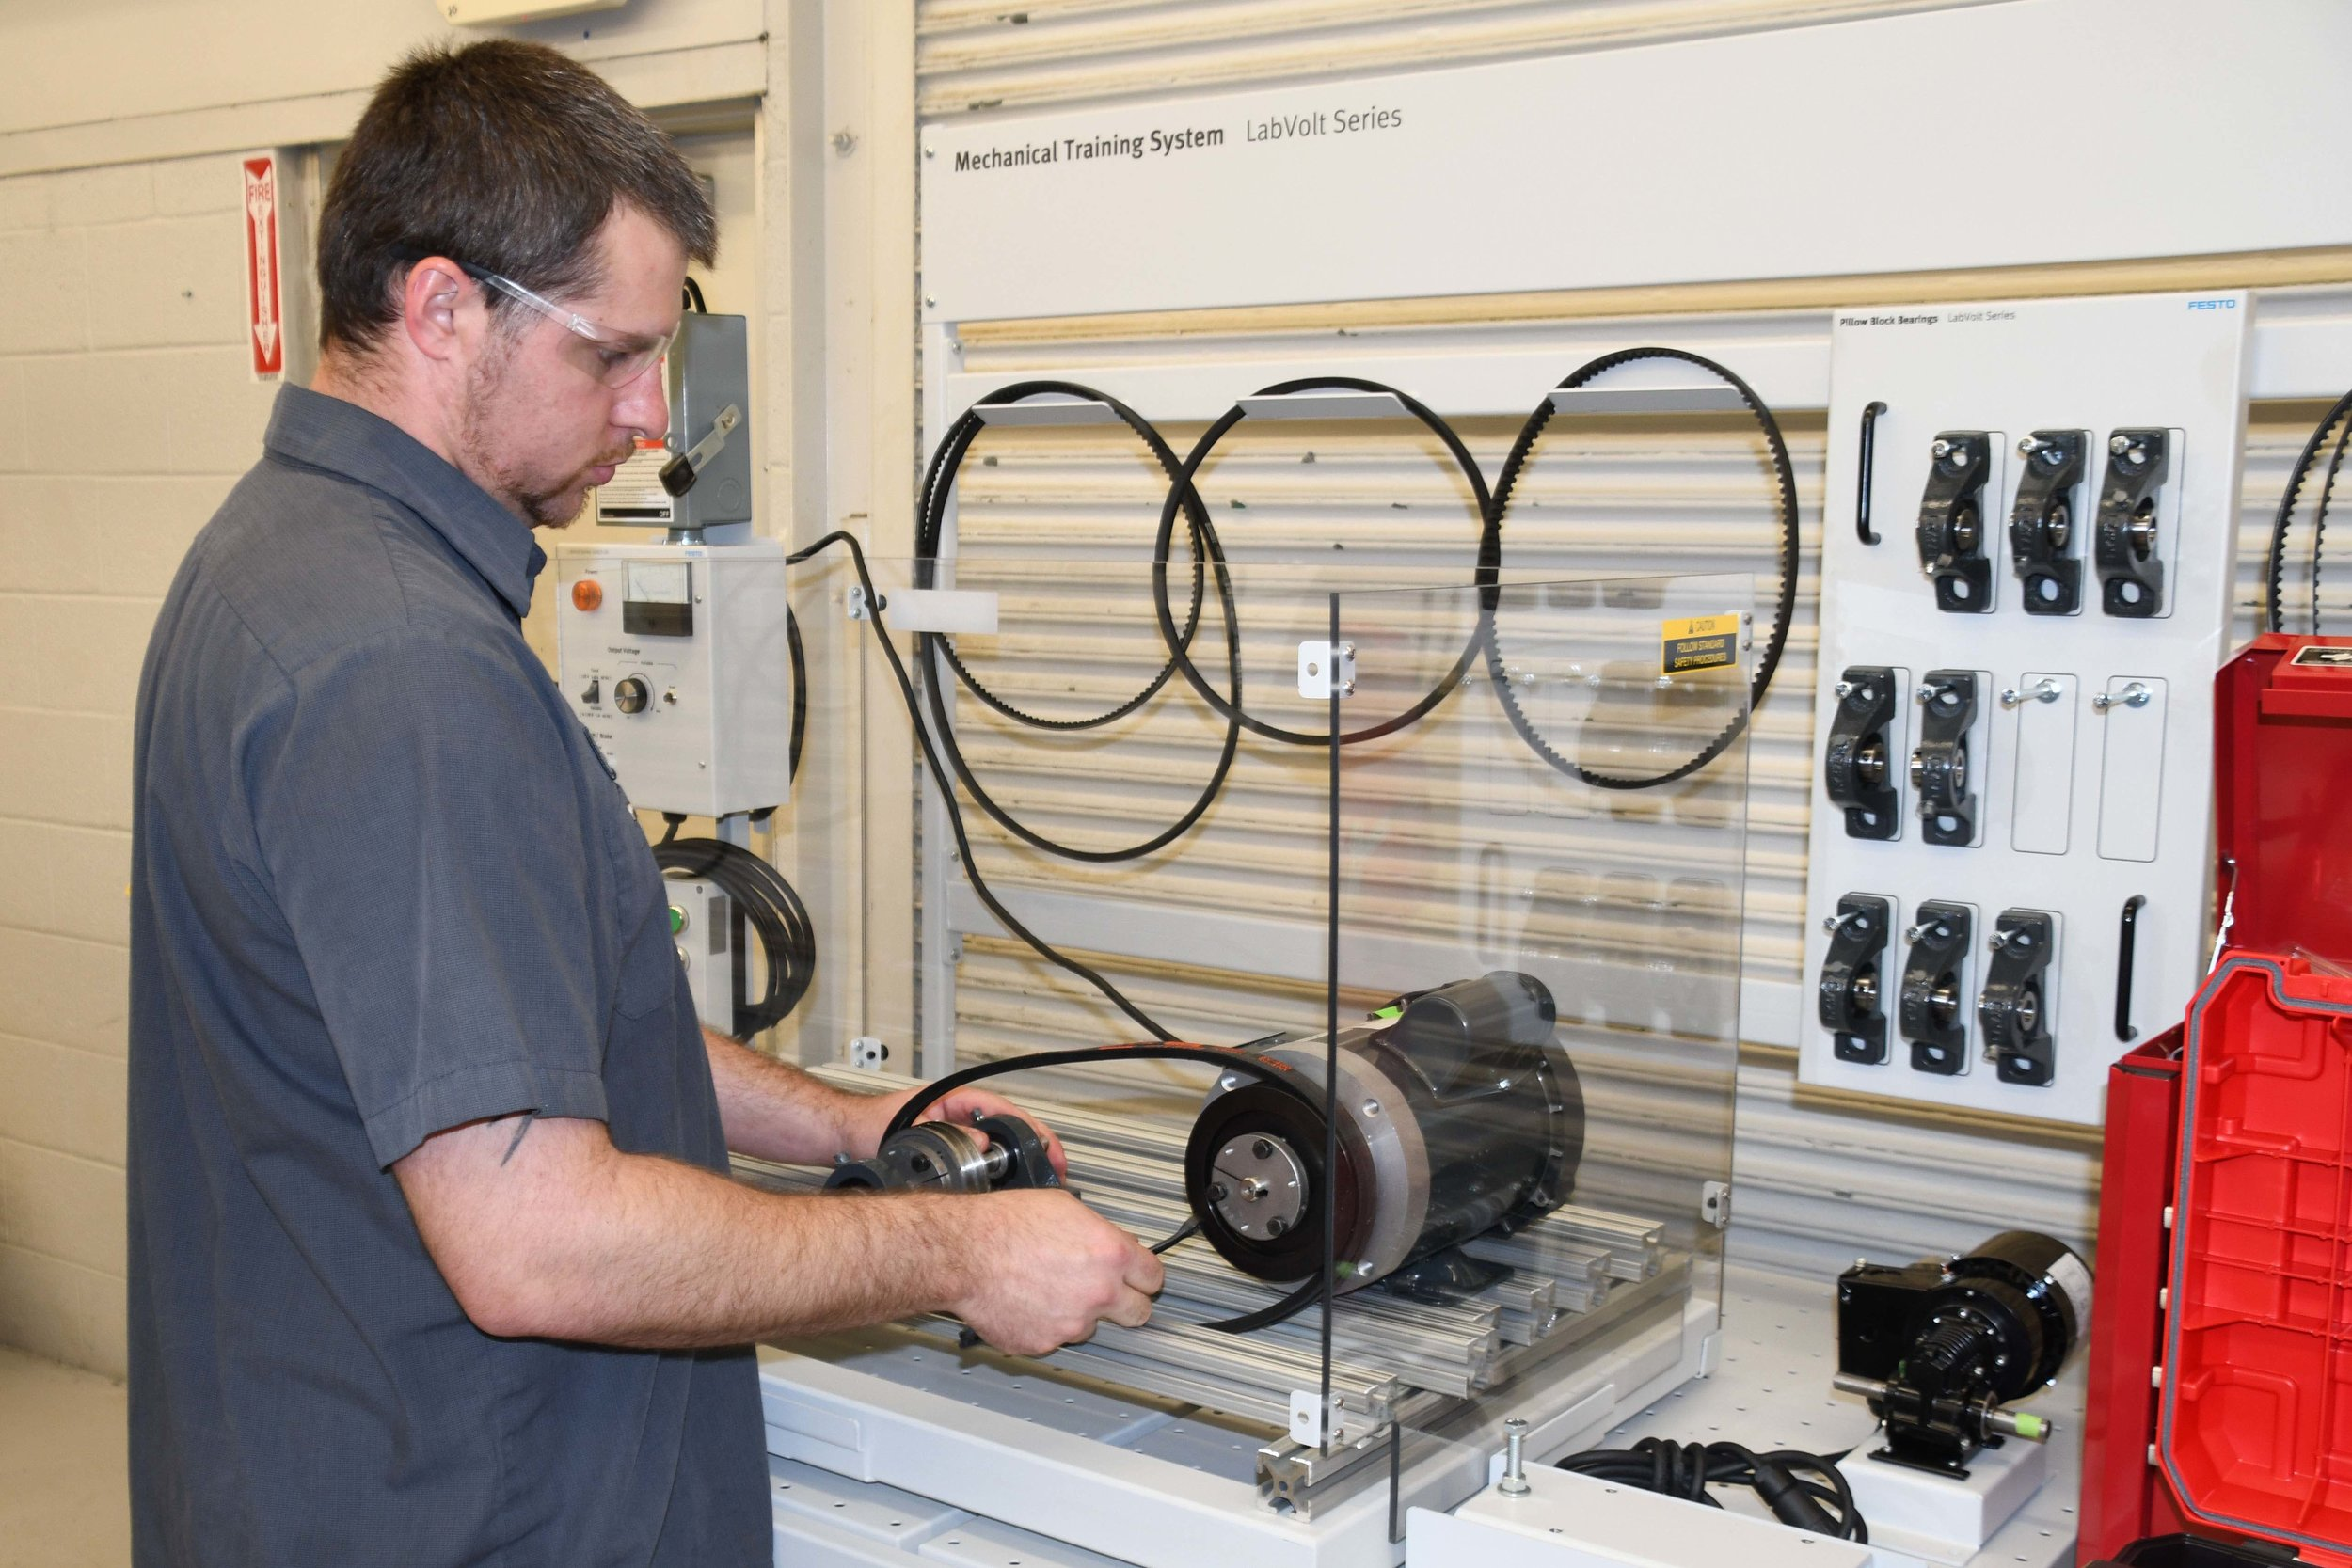 Jeff Mobley of Beulaville is working on a mechanical systems trainer. Submitted photo